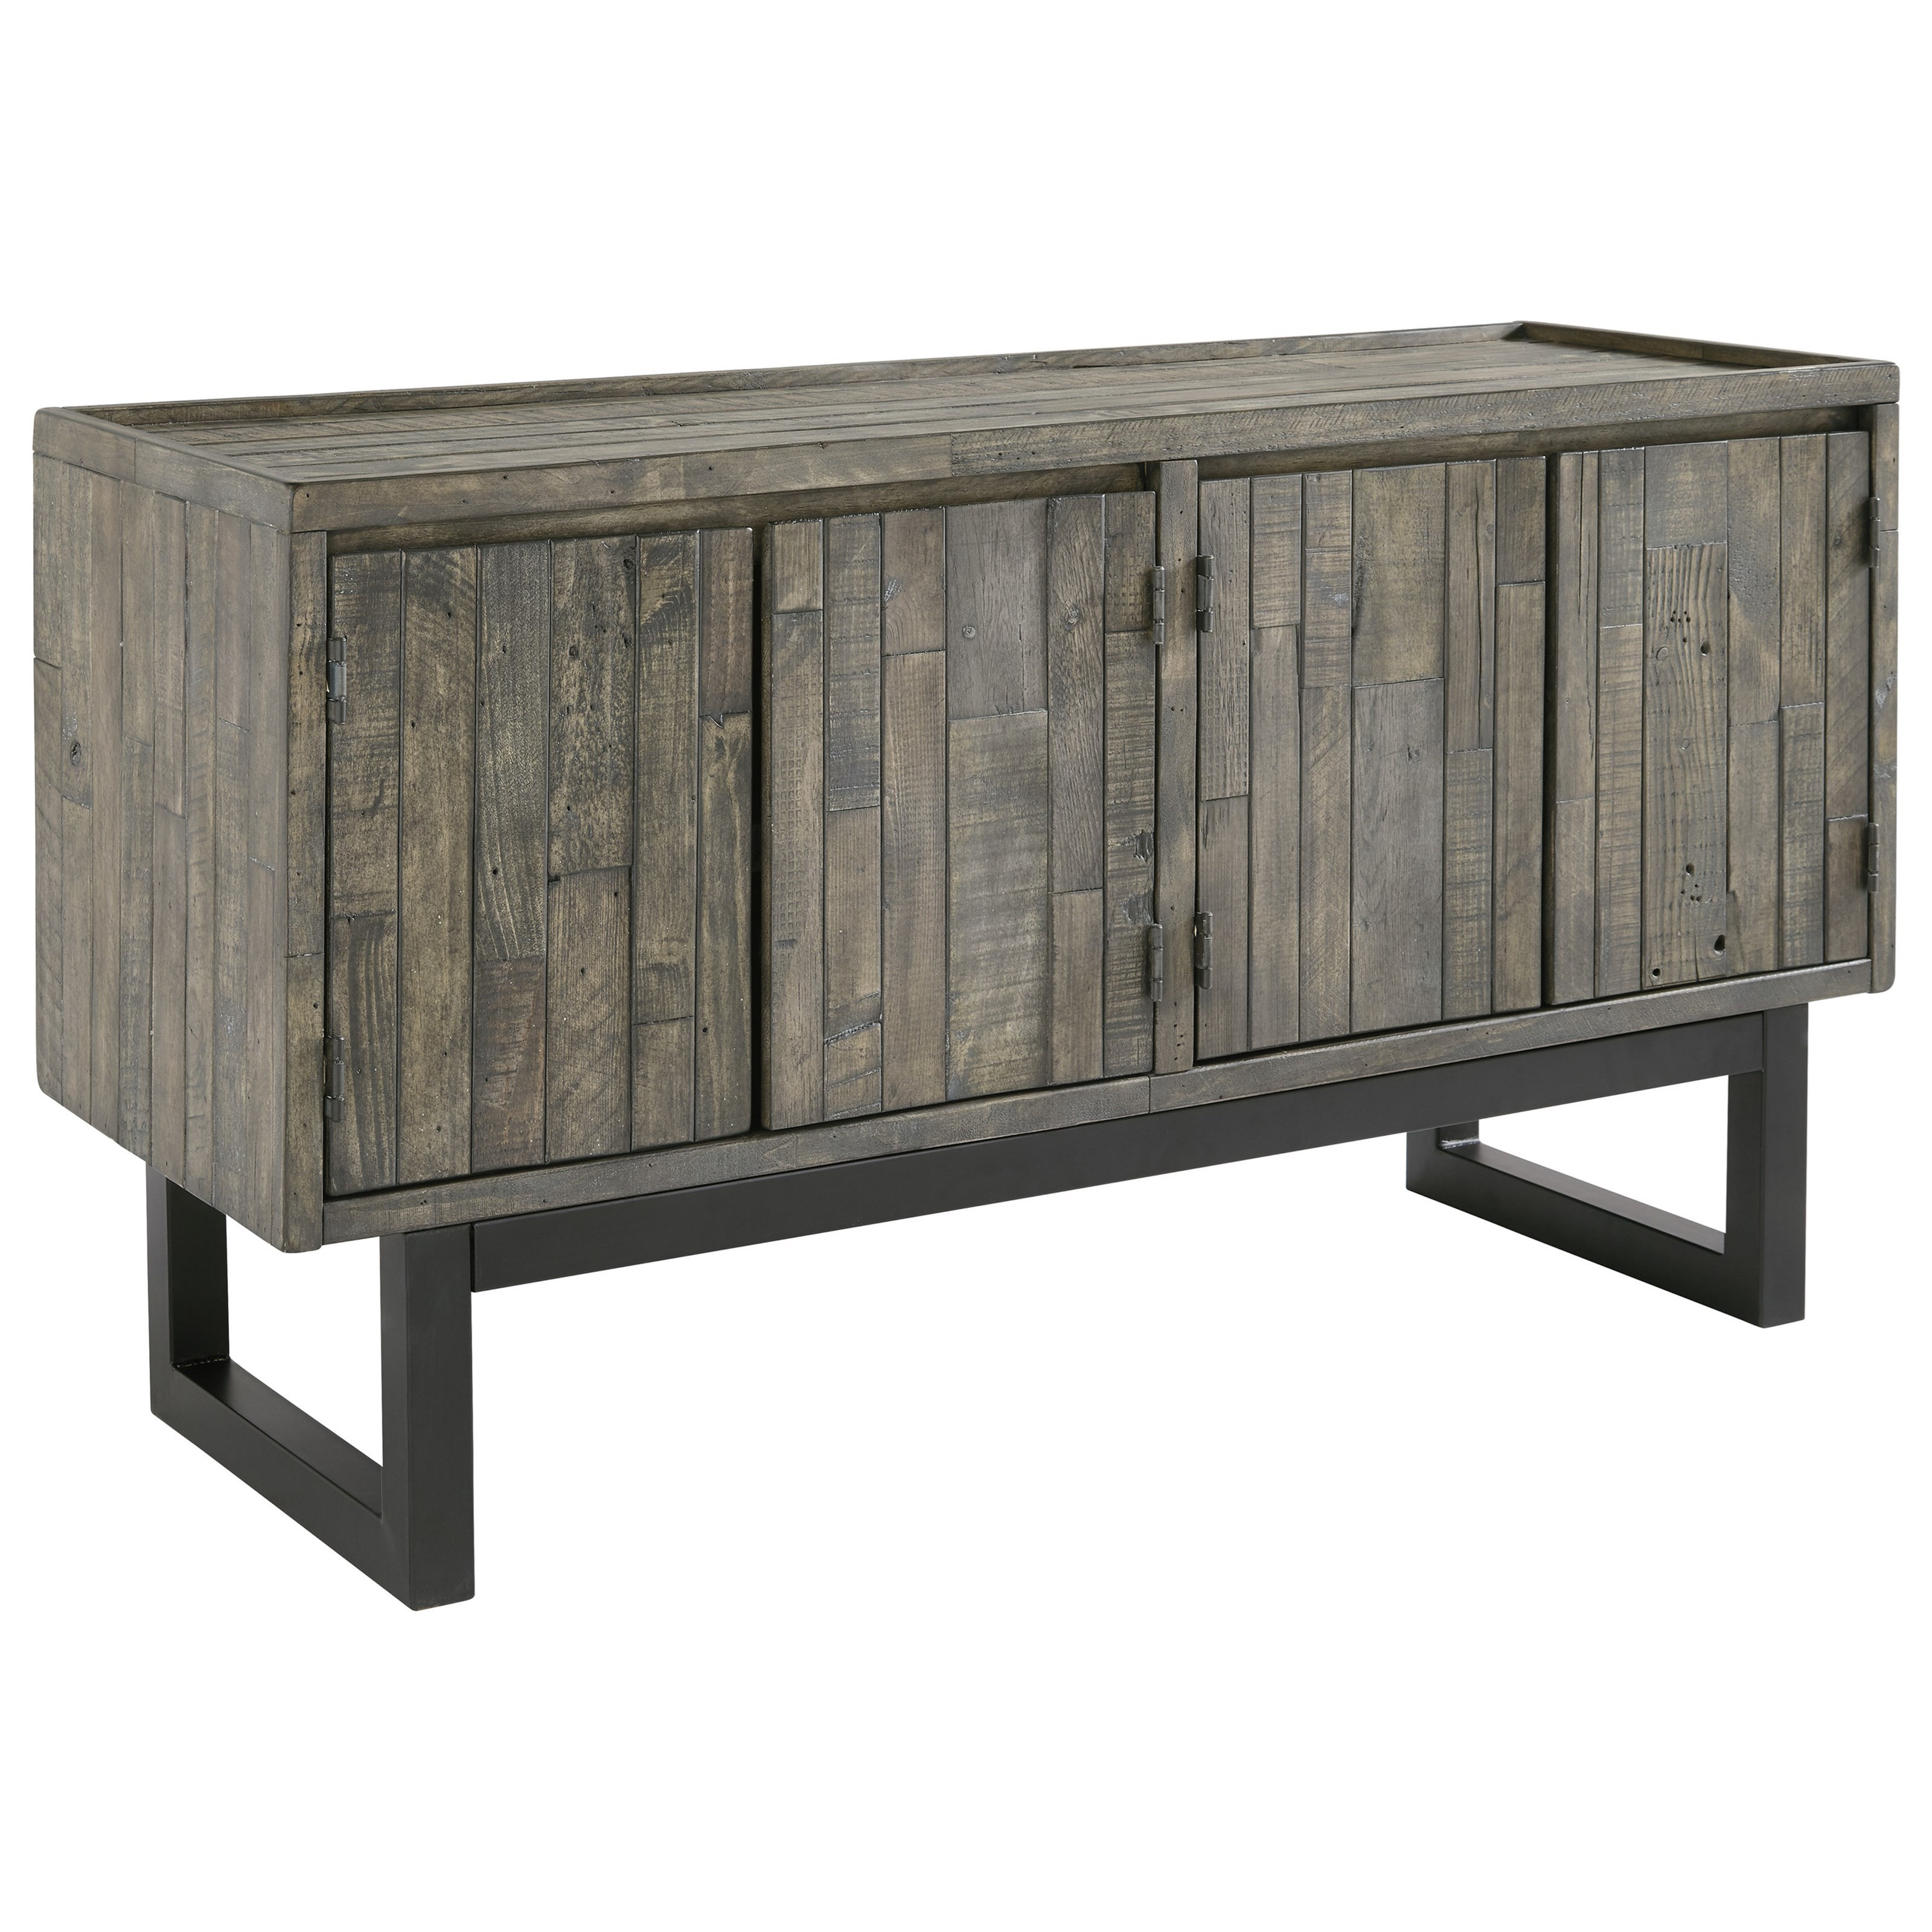 Cazentine Accent Cabinet by Signature Design by Ashley at Lapeer Furniture & Mattress Center